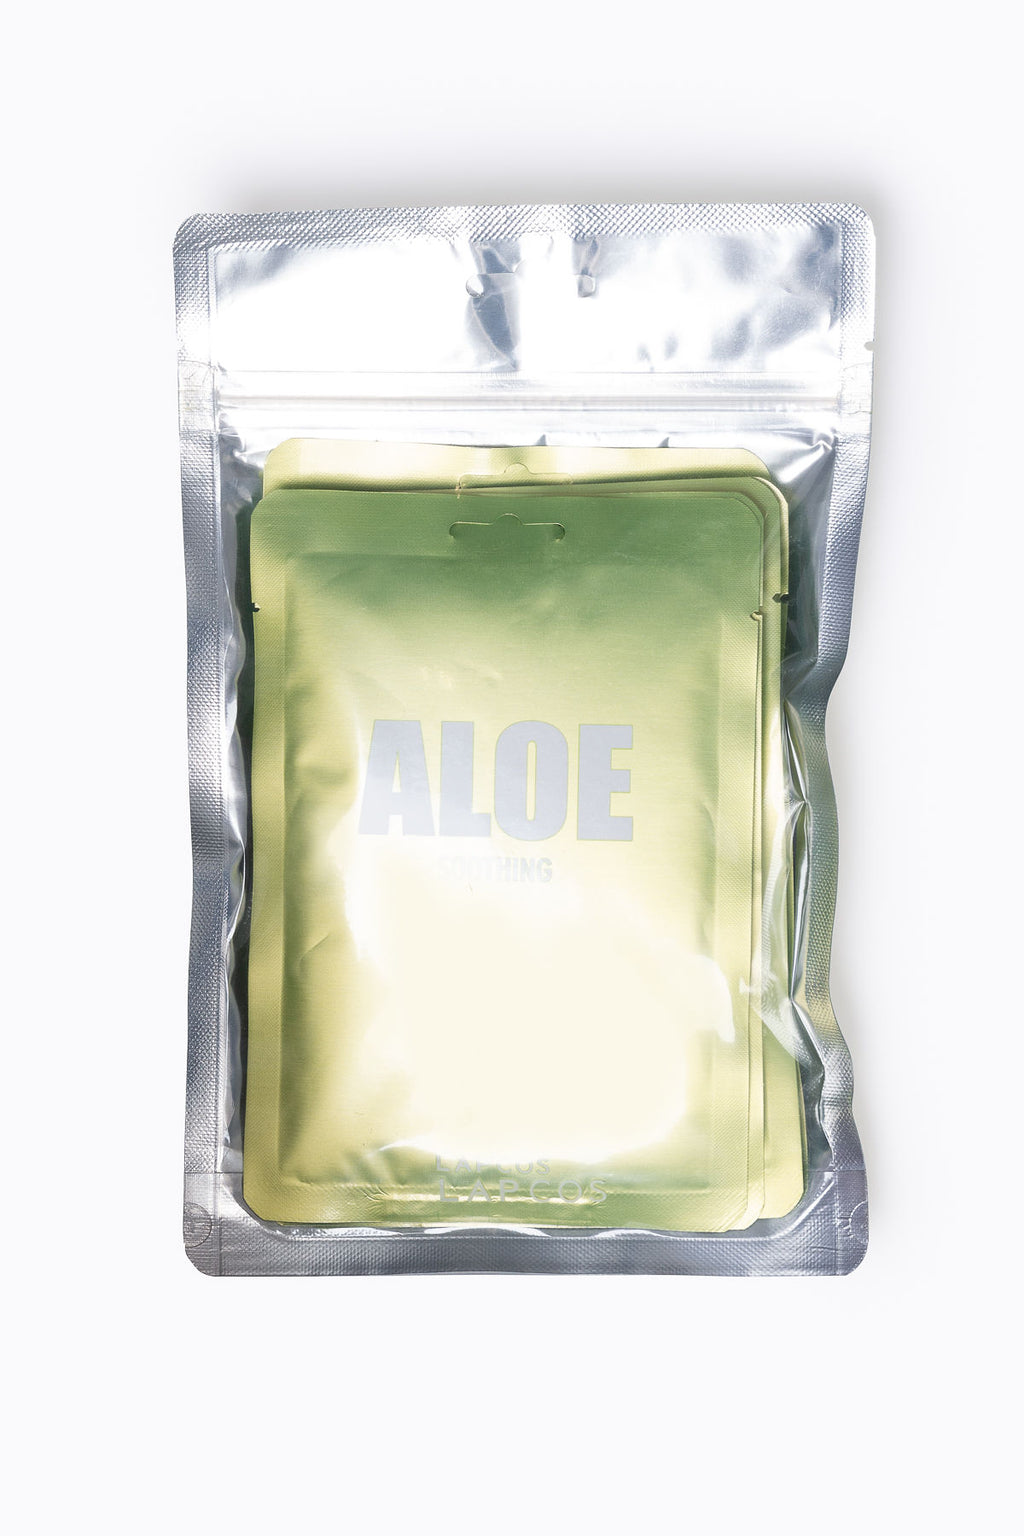 Lapcos: Daily Skin Mask - Aloe (5-pack)